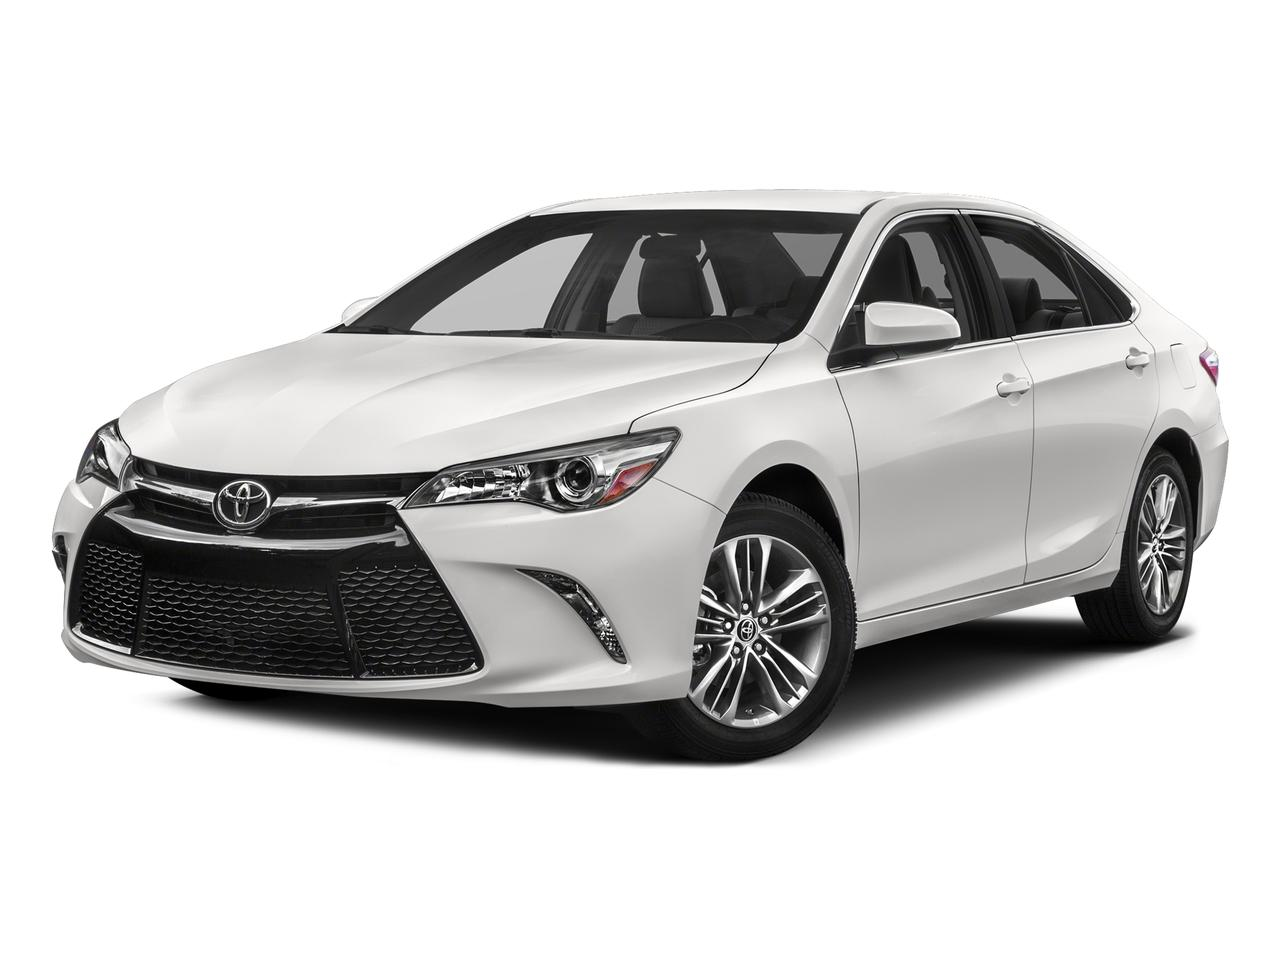 2016 Toyota Camry Vehicle Photo in Oklahoma City, OK 73162